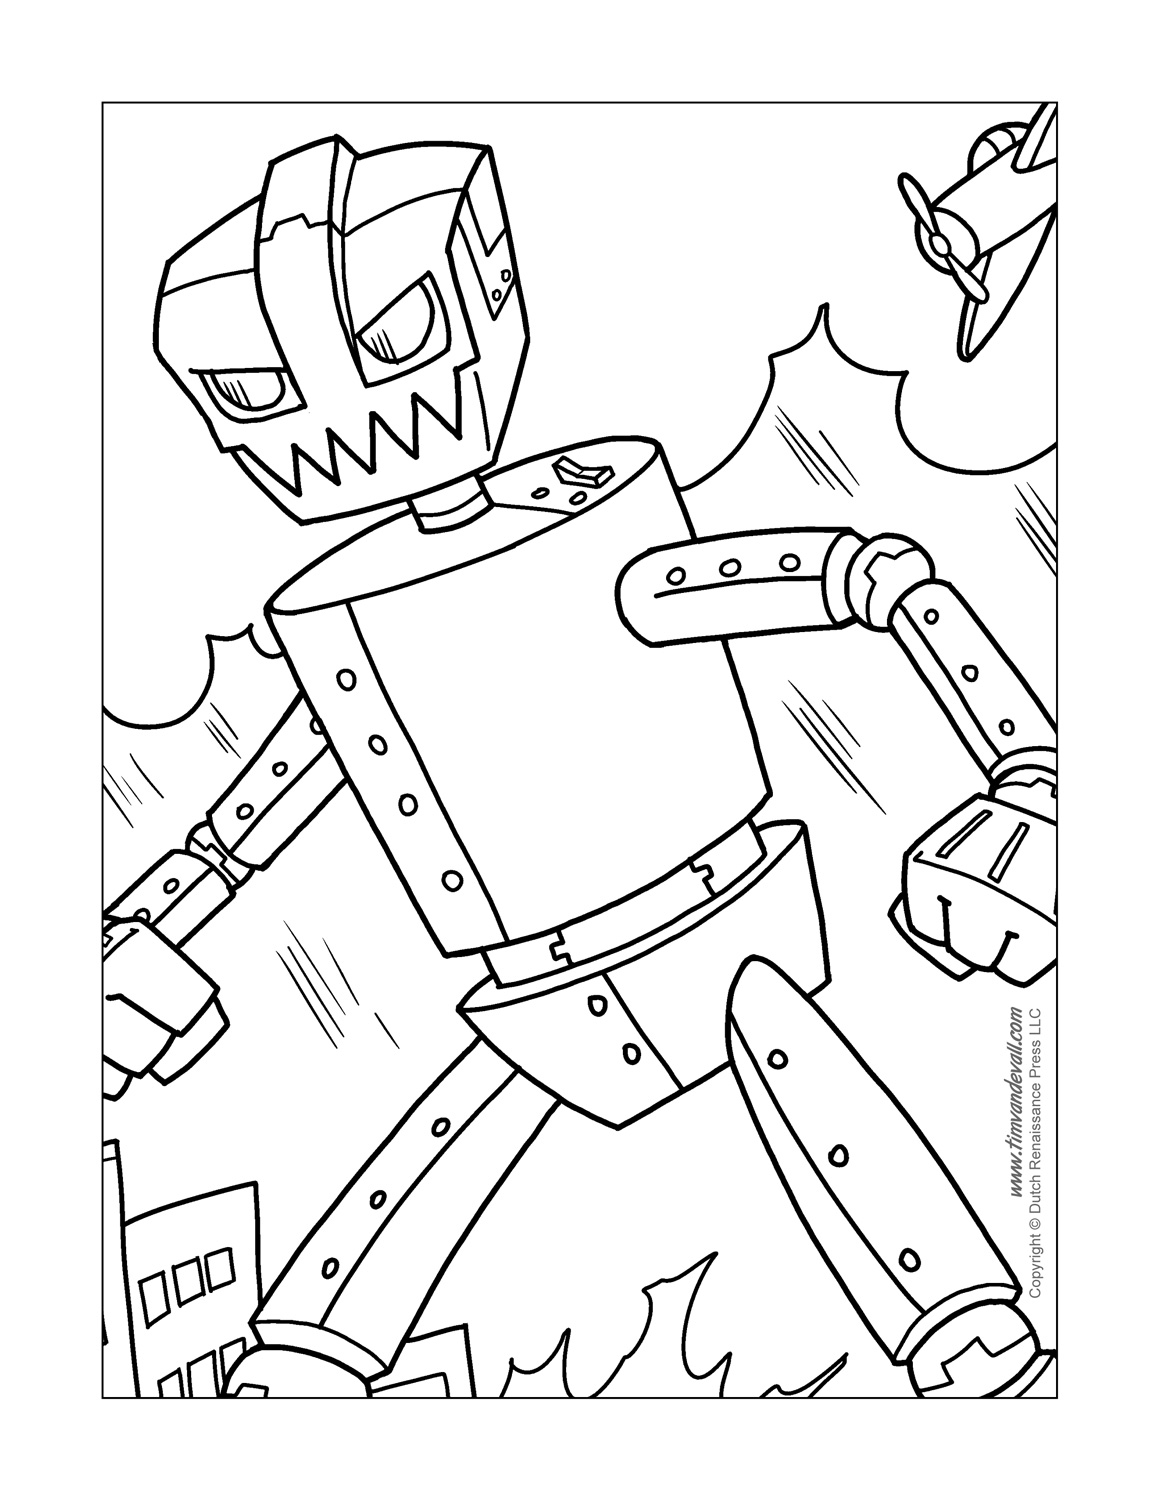 robot pictures to print roblox robot coloring page free printable coloring pages to robot pictures print